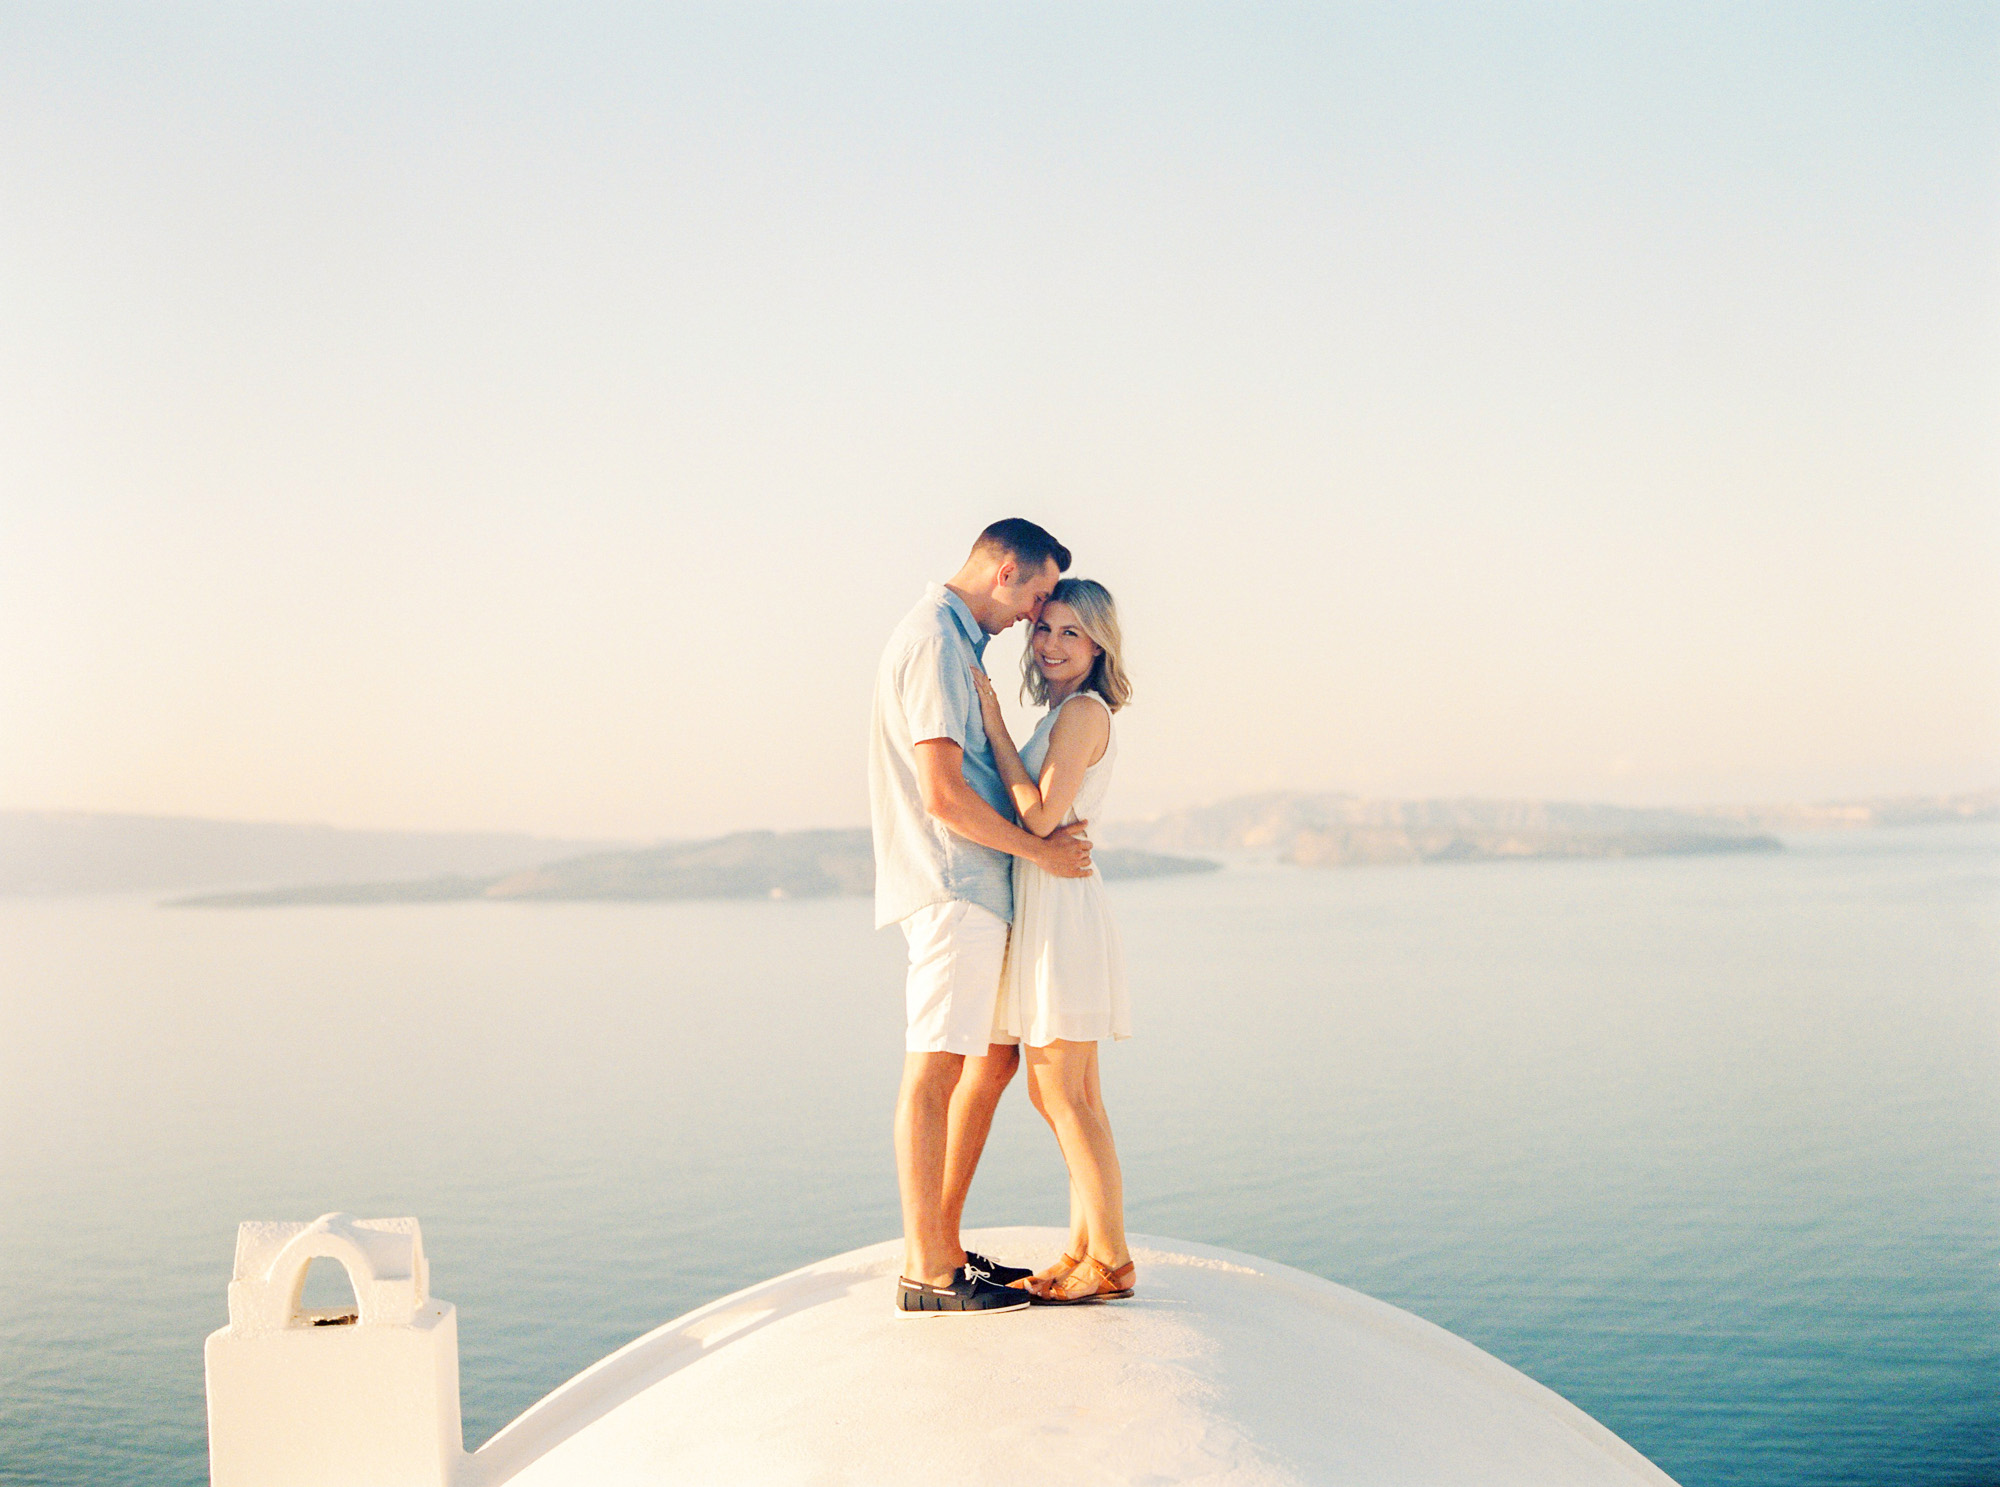 Our santorini engagement shoot